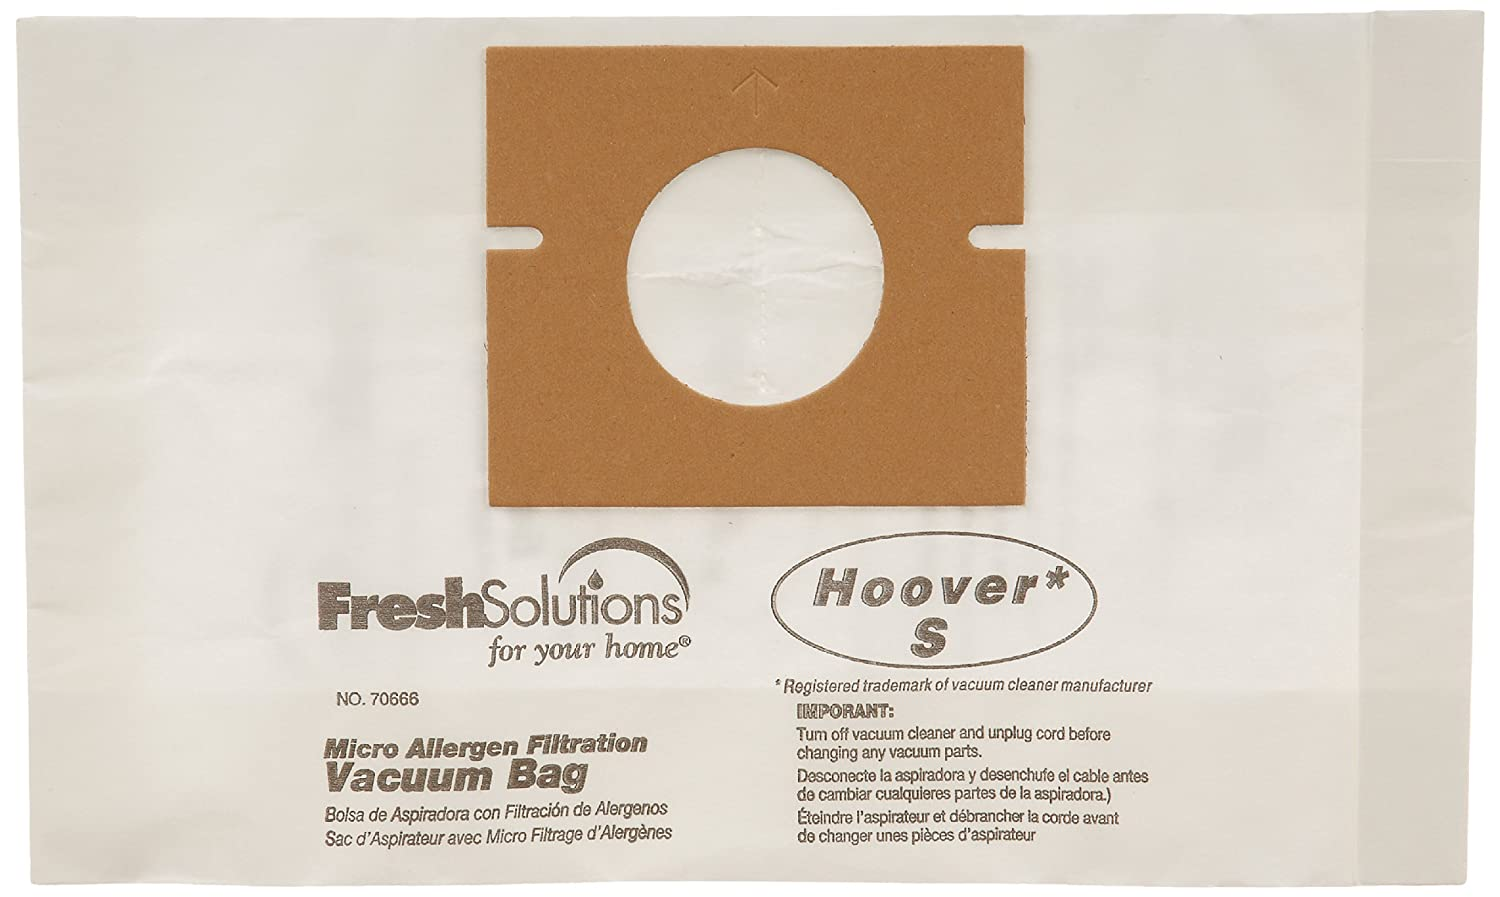 Amazon.com : Hoover 70666 Hoover S, Micro Filtration Vacuum Bags, Qty 3 : Household Vacuum Bags Upright : Garden & Outdoor